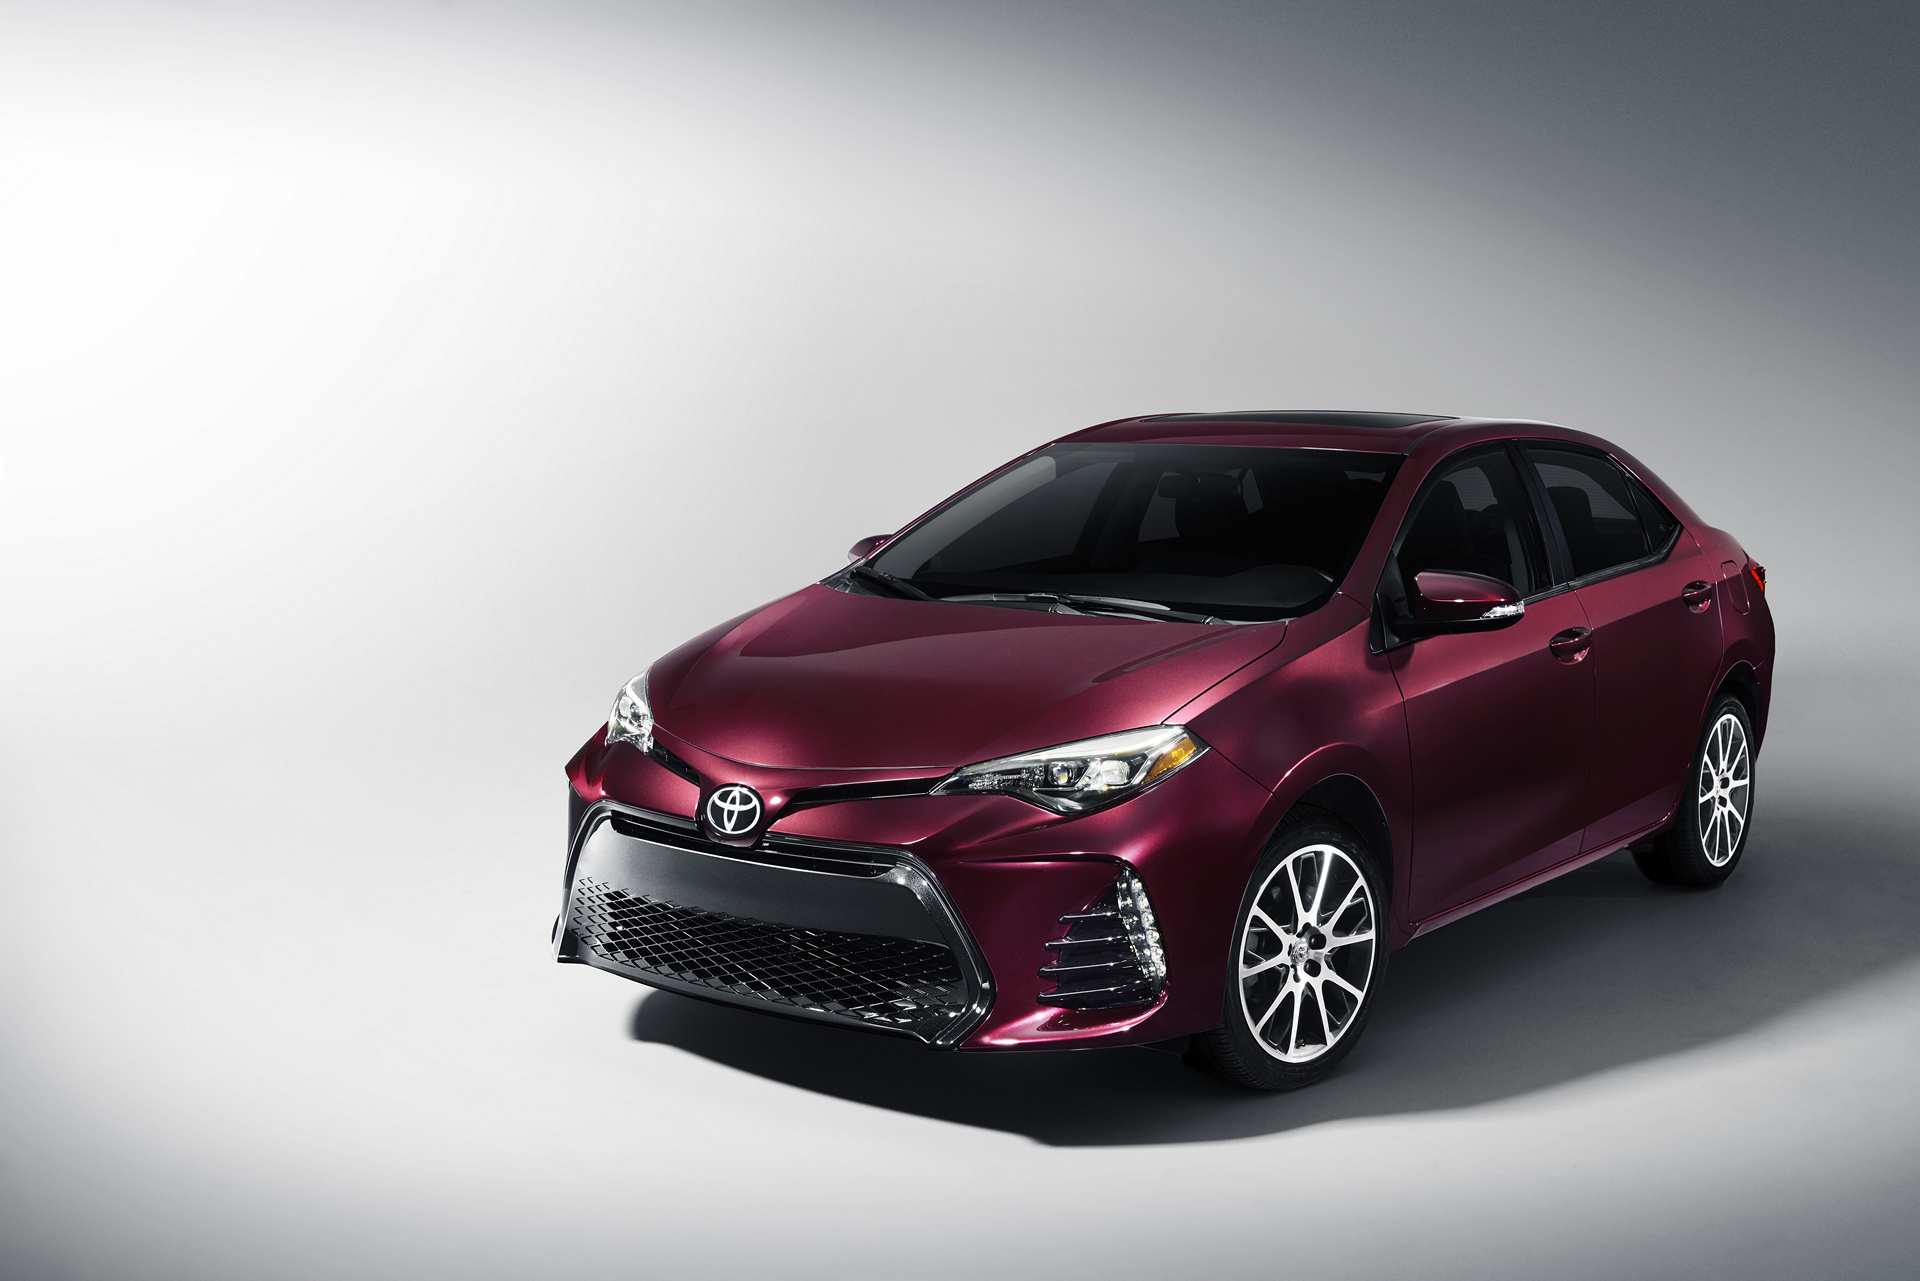 2017 Toyota Corolla 50th Anniversary Special Edition © Toyota Motor Corporation